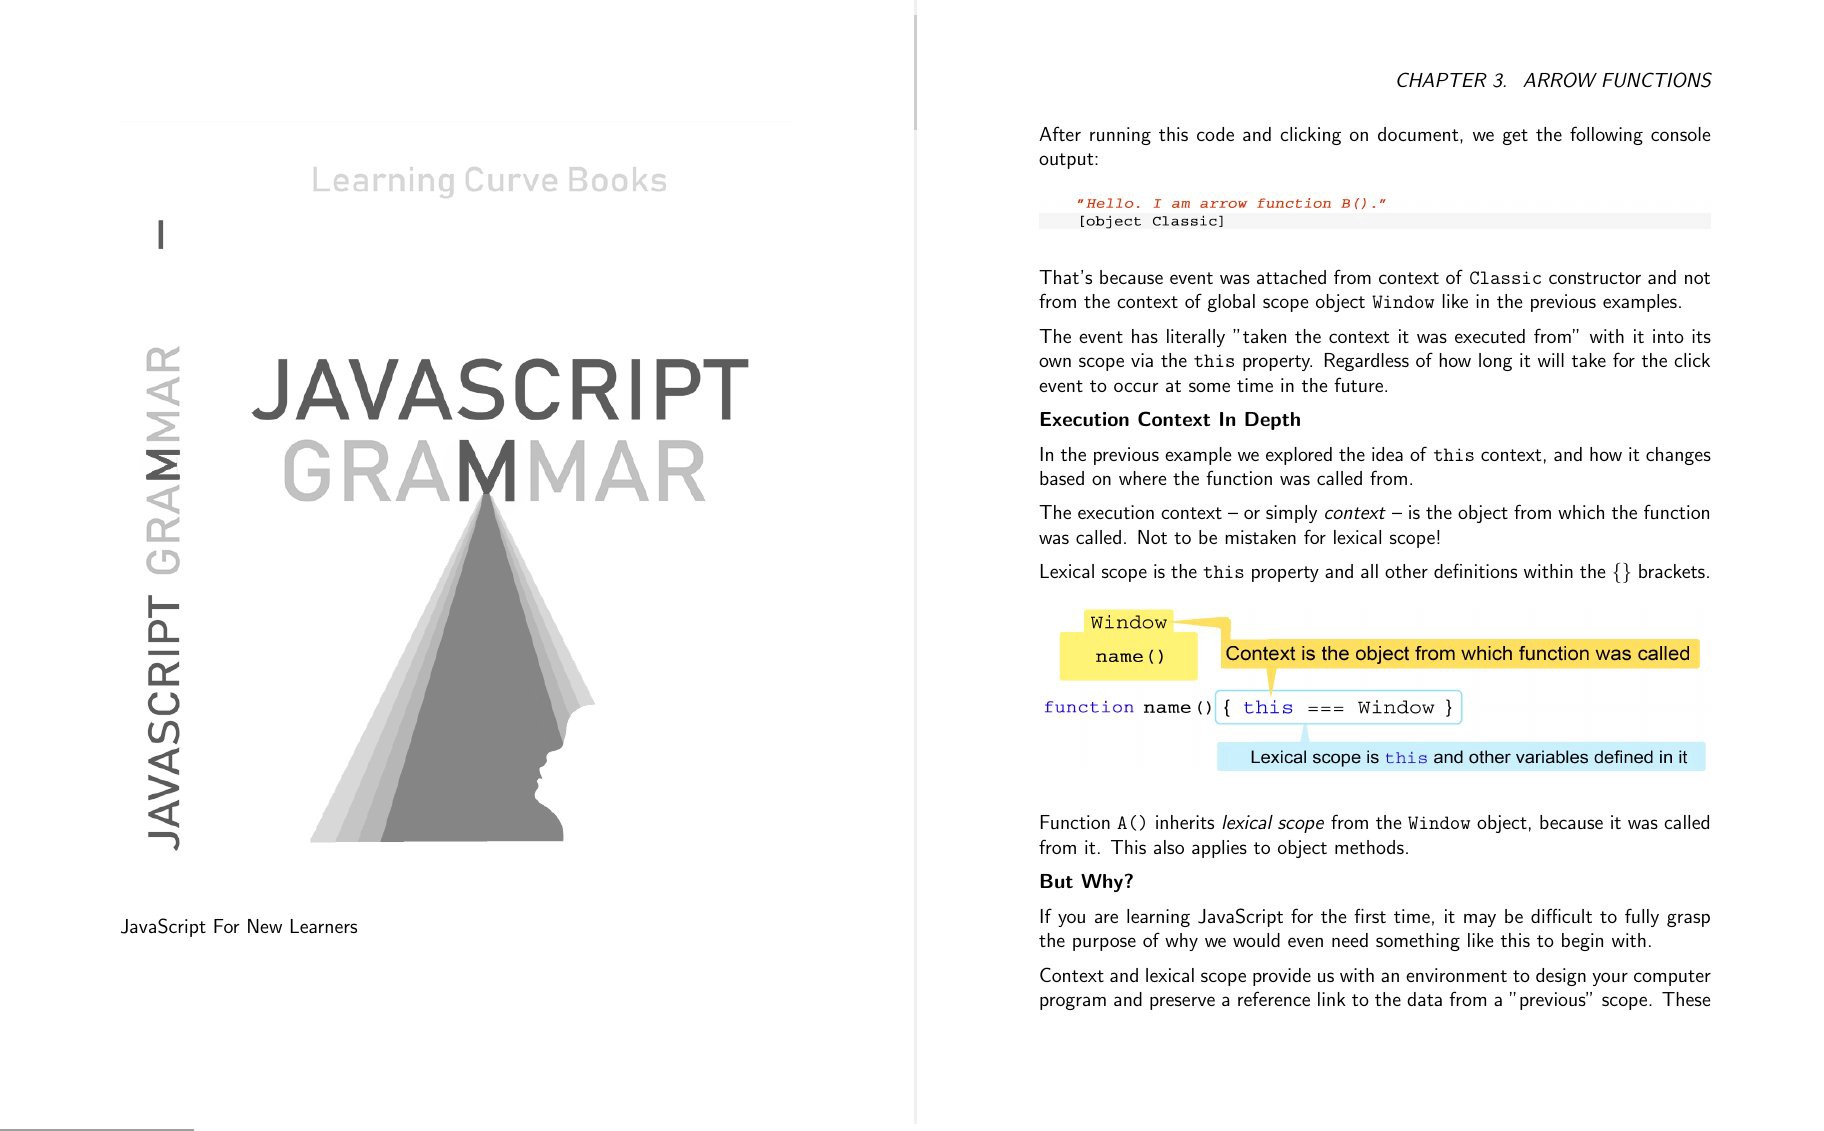 Get JavaScript Grammar for free  - JavaScript Teacher - Medium